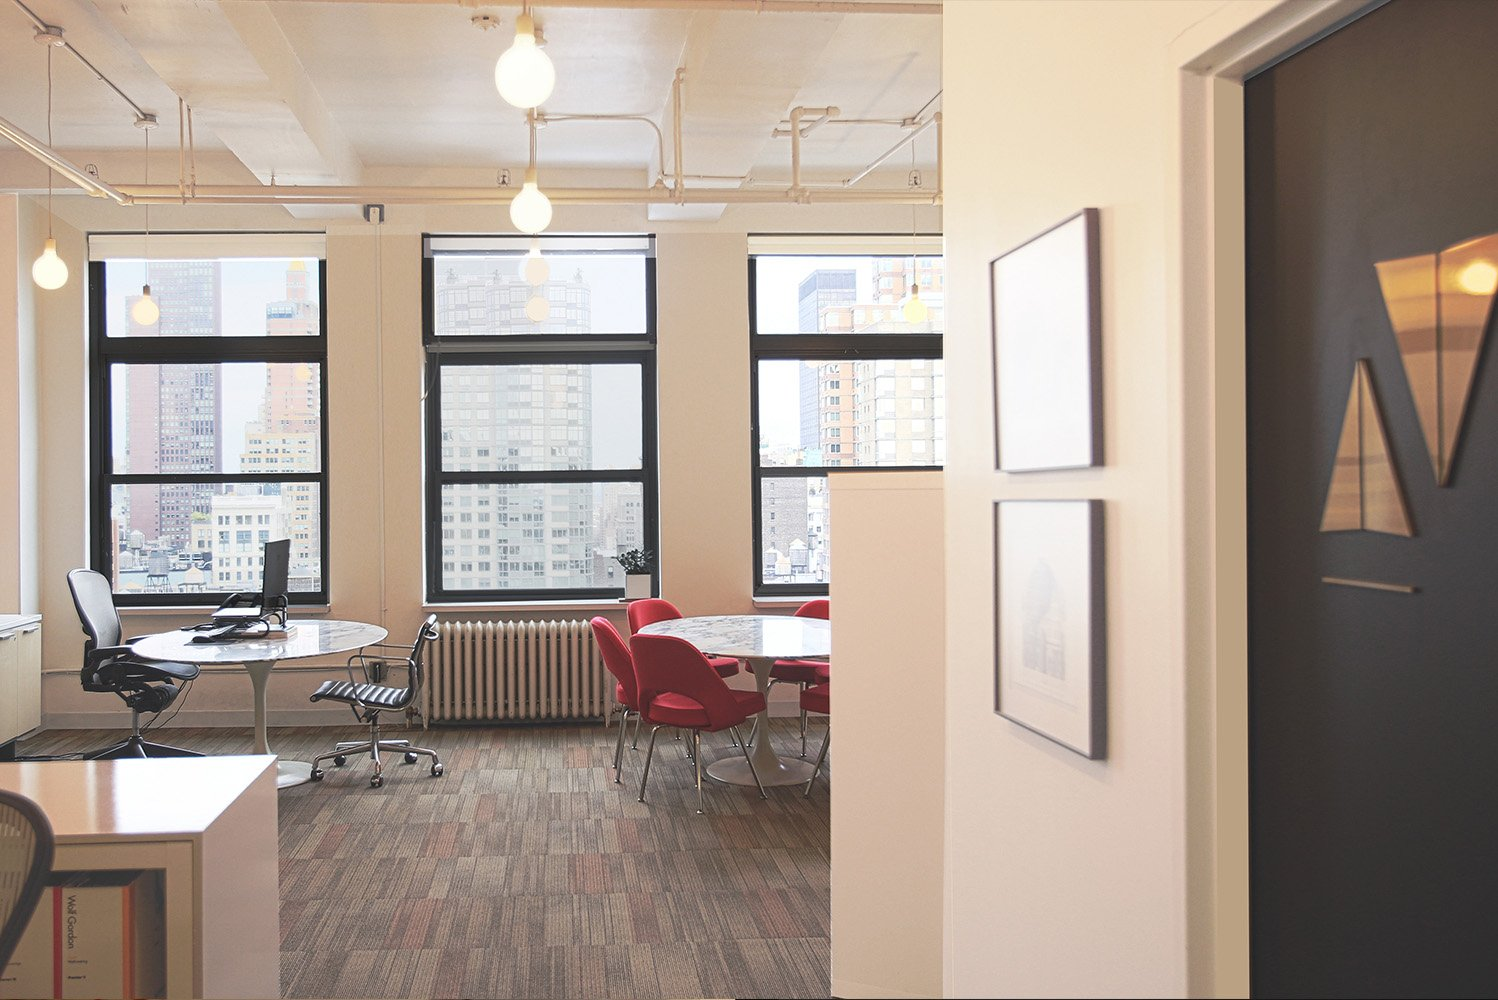 The firm's new location will allow it to provide interior design services, as well as custom artwork, graphic design, project management, and branding services to prospective New York-based clients.